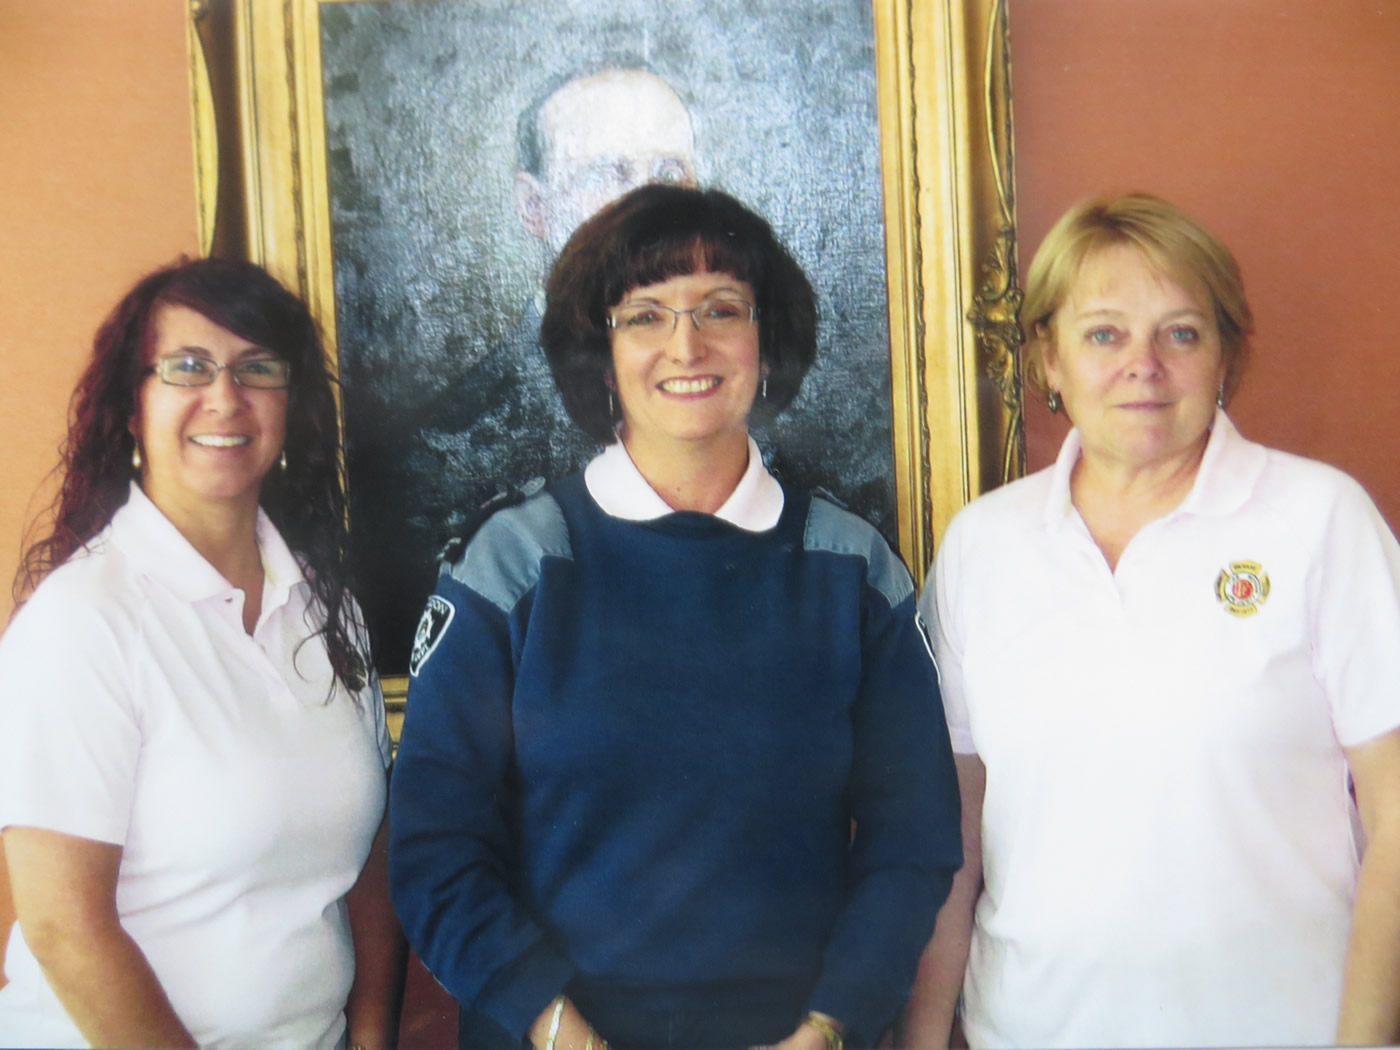 G. Hosiawa (Administrative Clerk-Administration), D. O'Brien (Administrative Clerk-Training) and E. Belanger (Administrative Clerk-Apparatus) October 2015